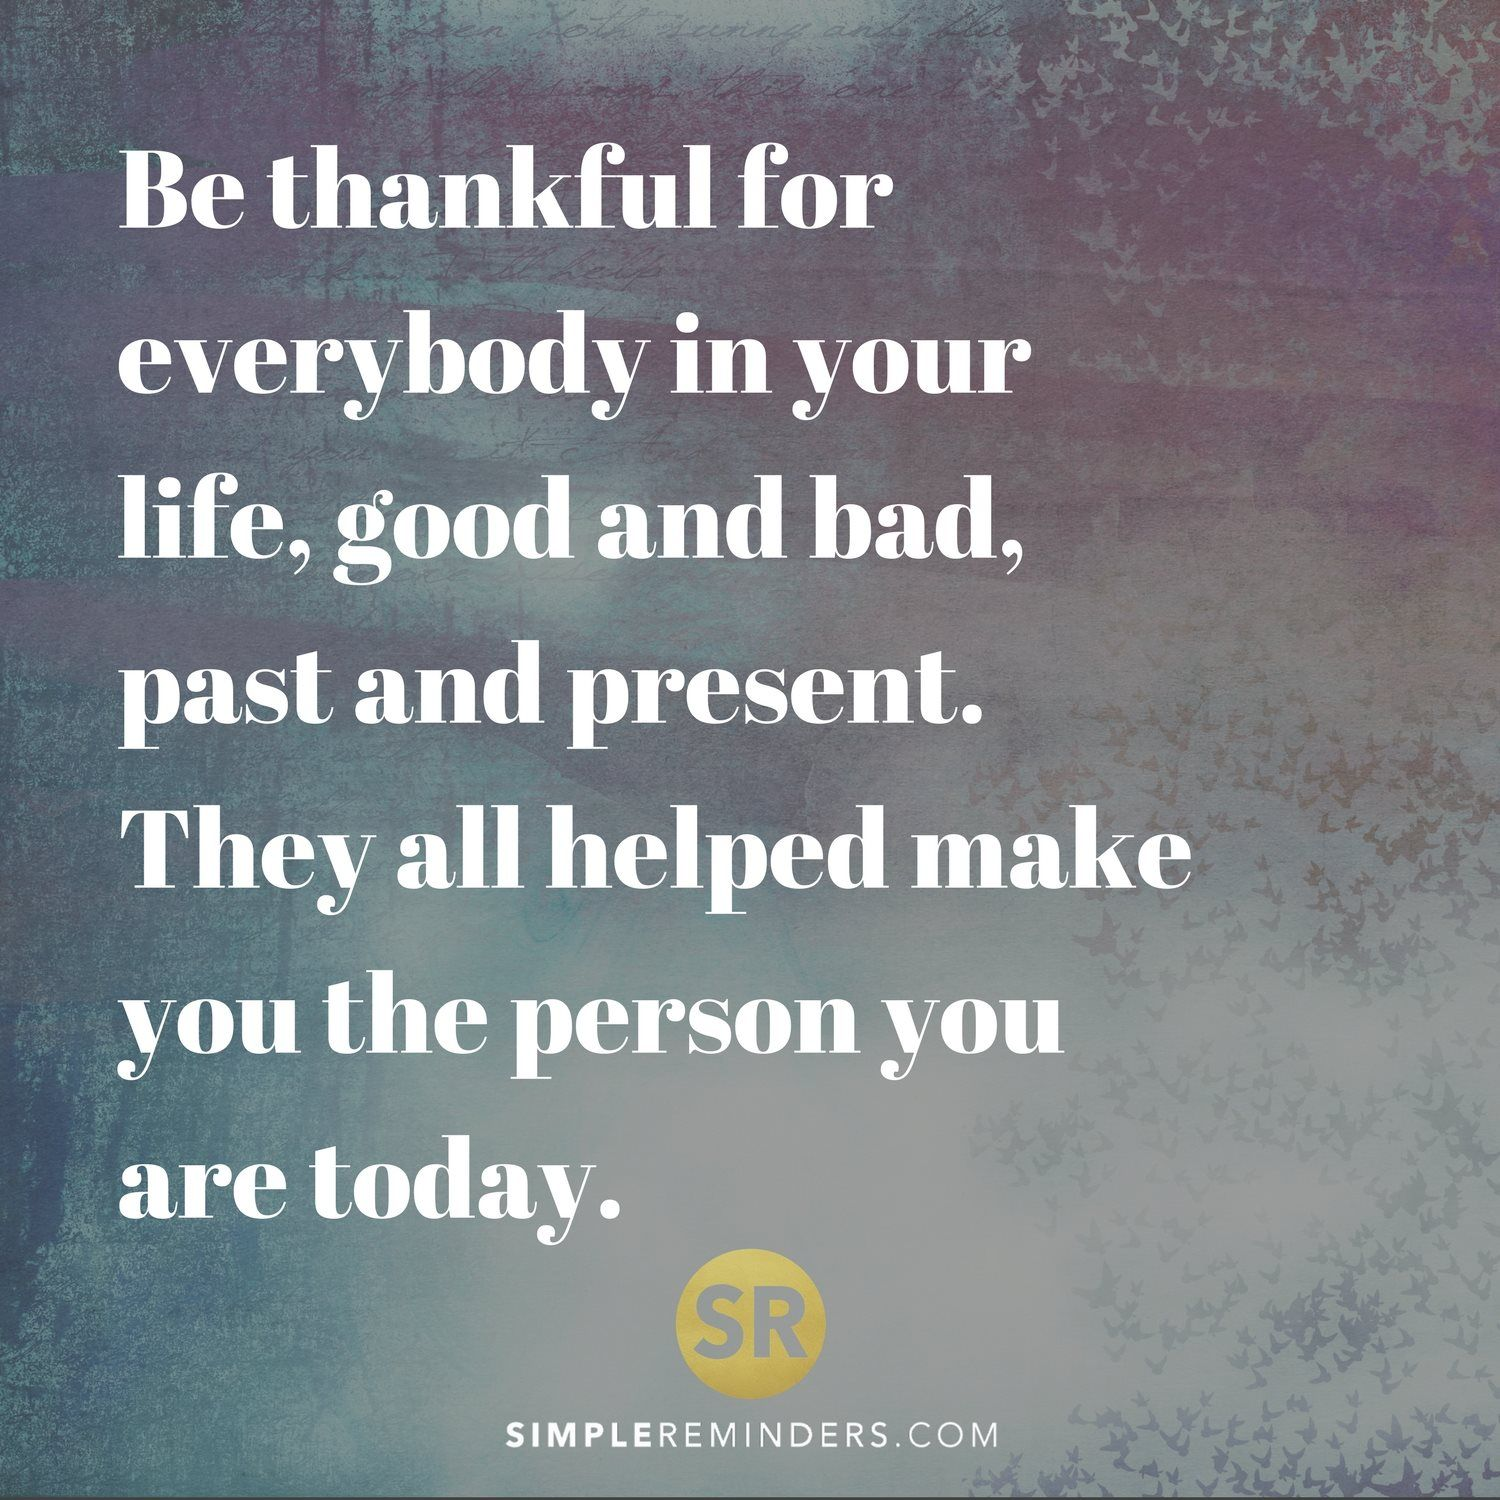 Today Quotes About Life Be Thankful For Everybody In Your Life Good And Bad Past And